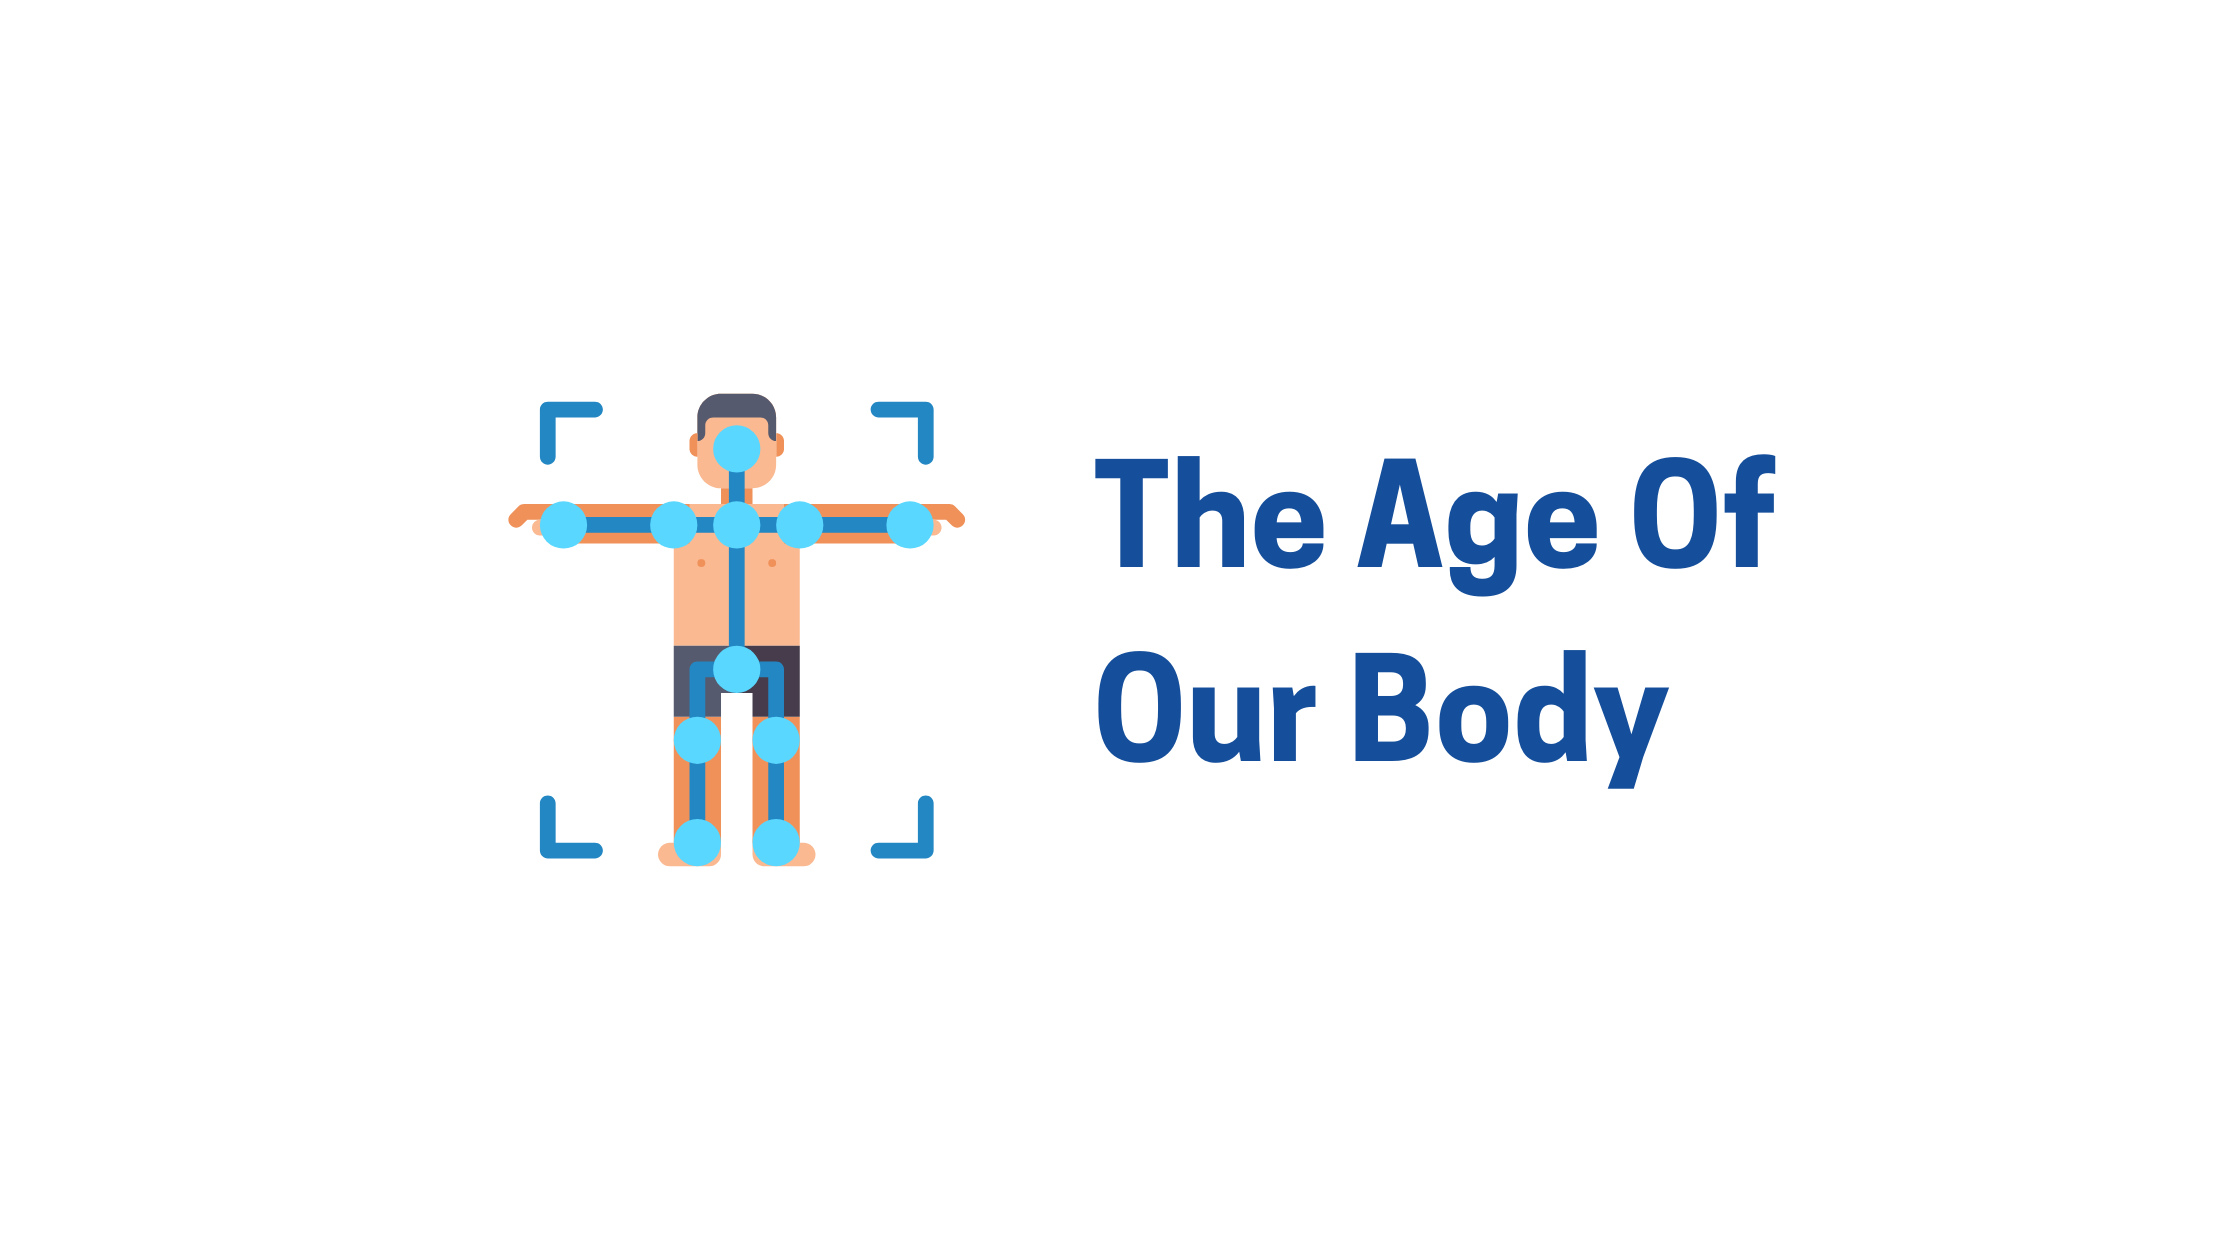 How Old Is Our Body Cover